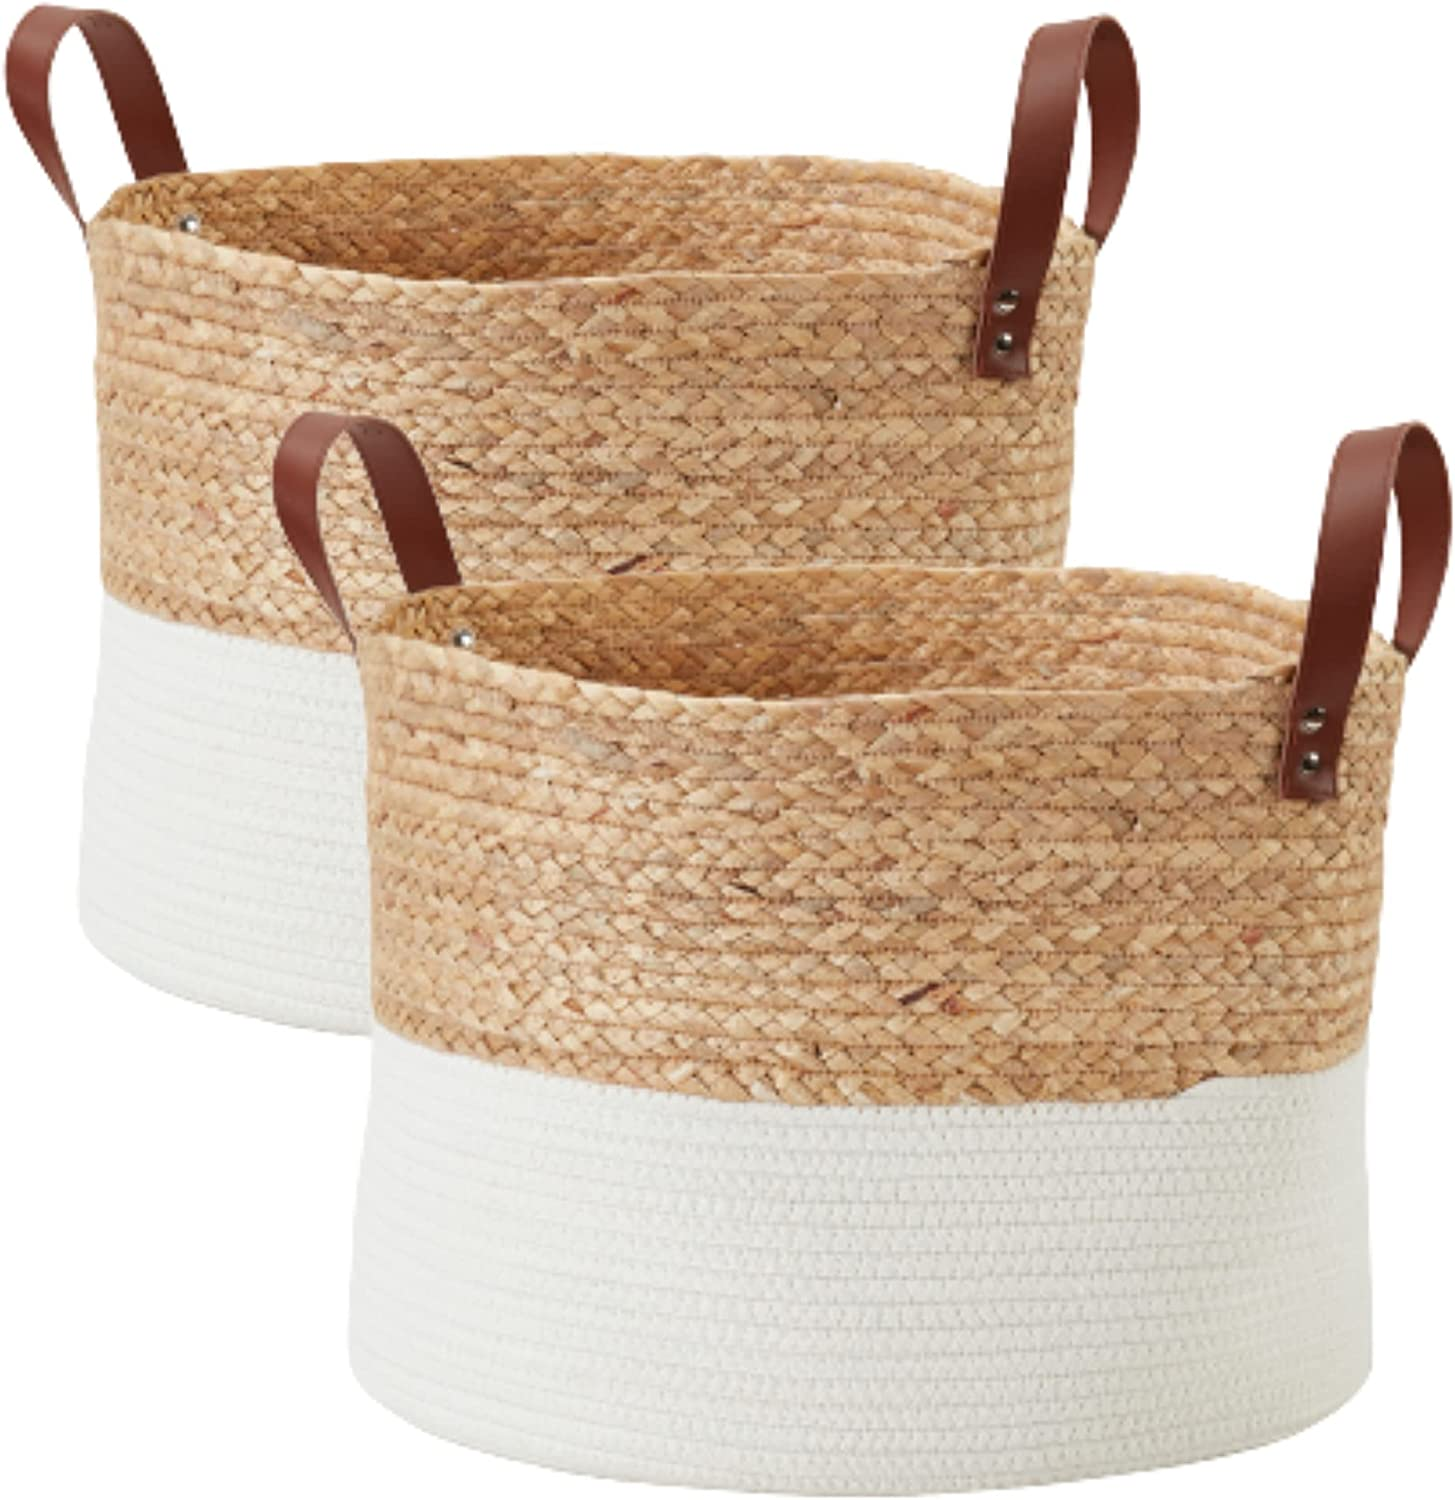 DECOMOMO Large security 2pc Cotton Rope New sales Sto Basket Natural Woven Wicker